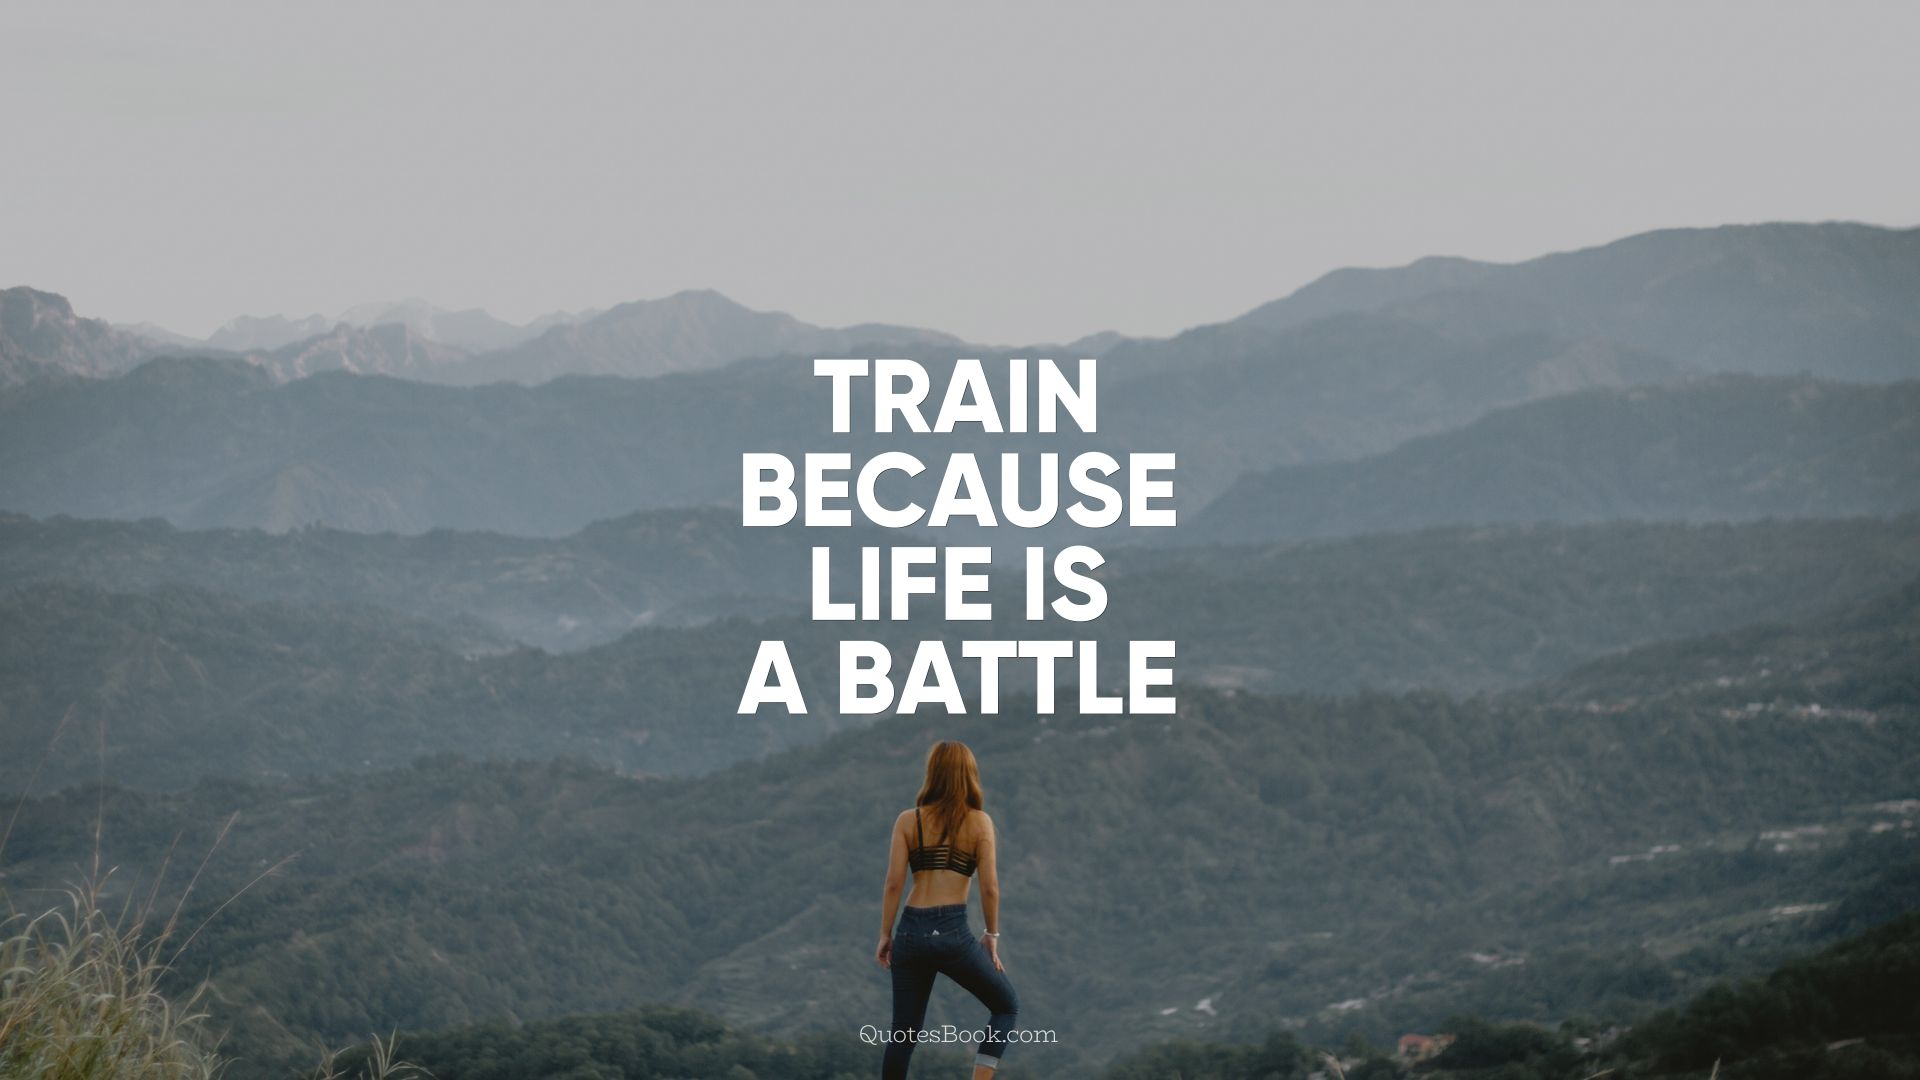 Train because life is a battle